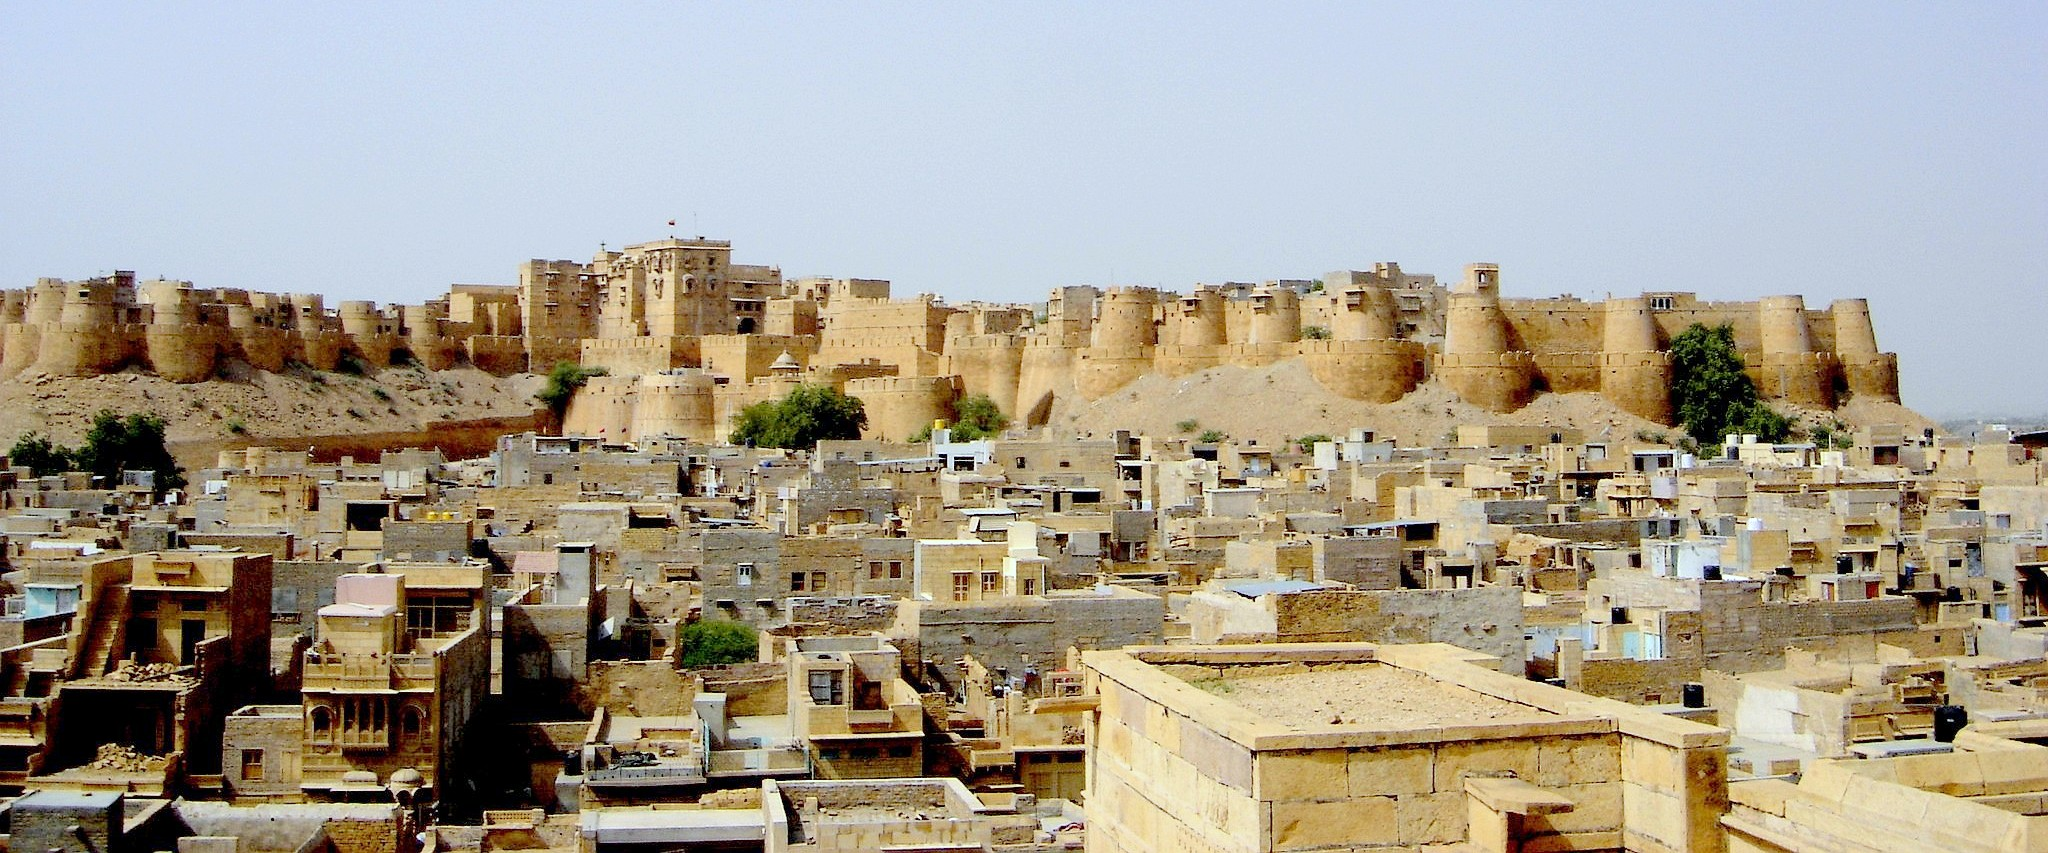 3 heritage places to visit in Rajasthan: Golden Fort at Jaisalmer india